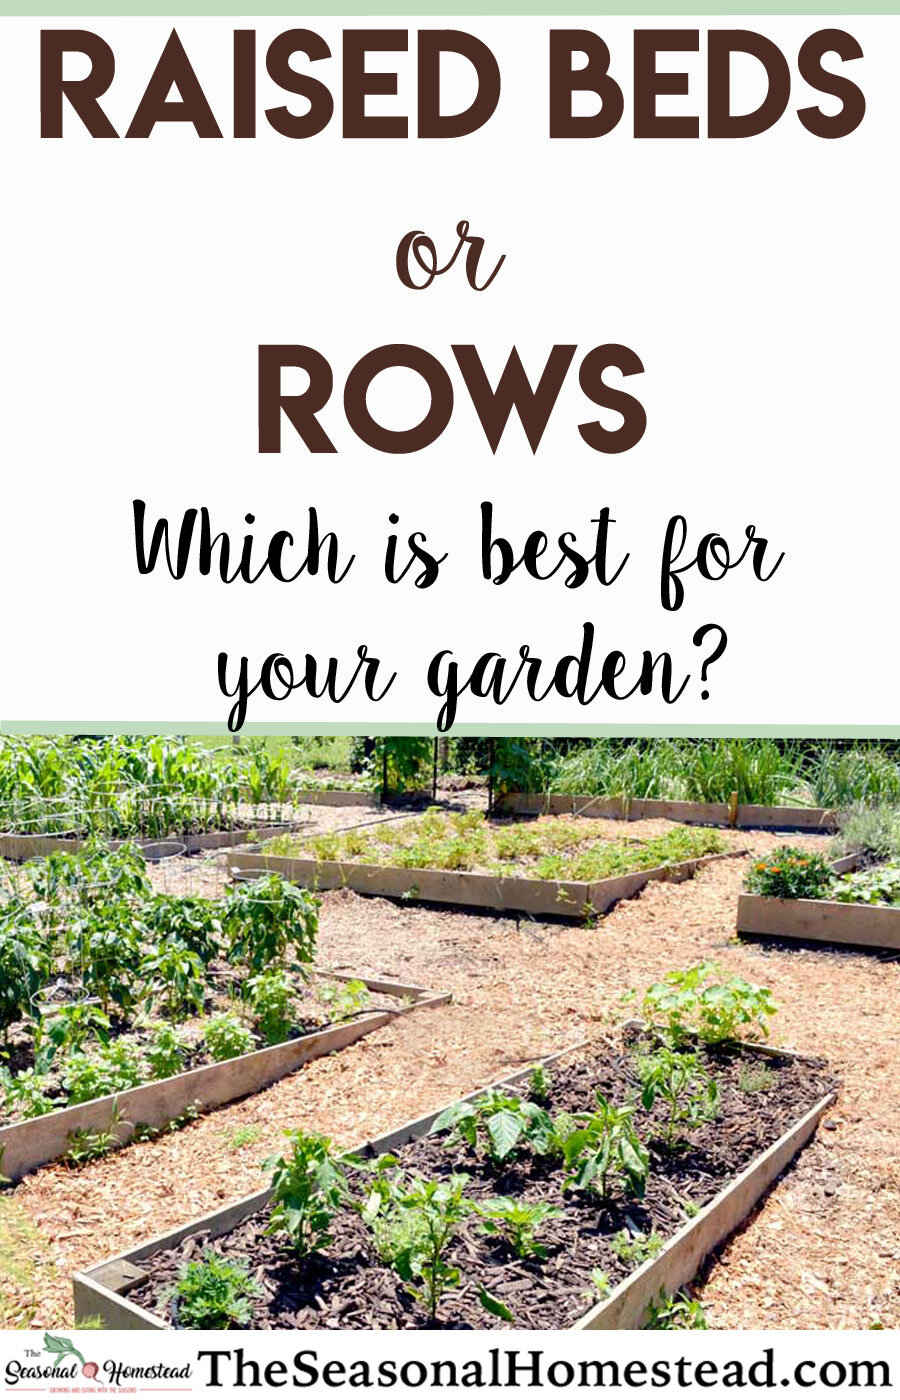 Raised-Beds-or-Rows-Which-is-best-for-your-garden.jpg